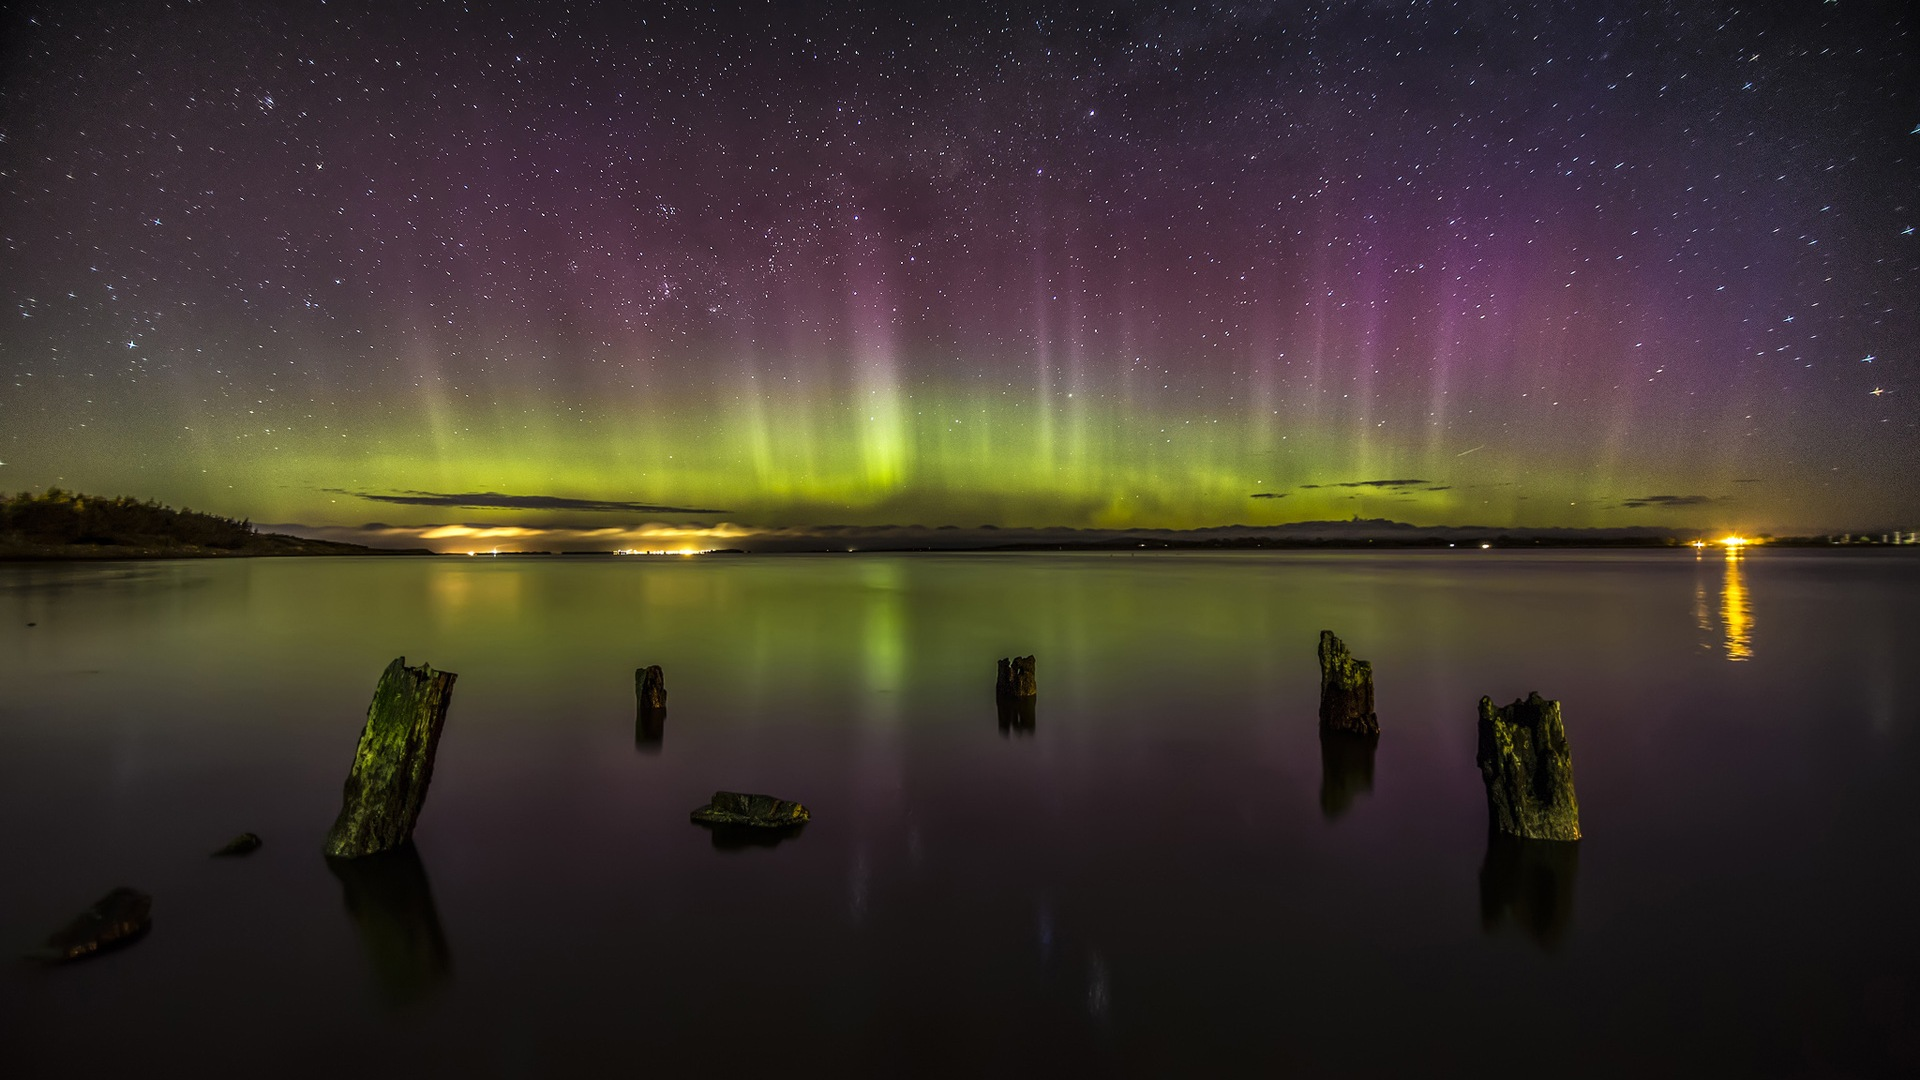 Natural wonders of the Northern Lights HD Wallpaper (2) #24 - 1920x1080.